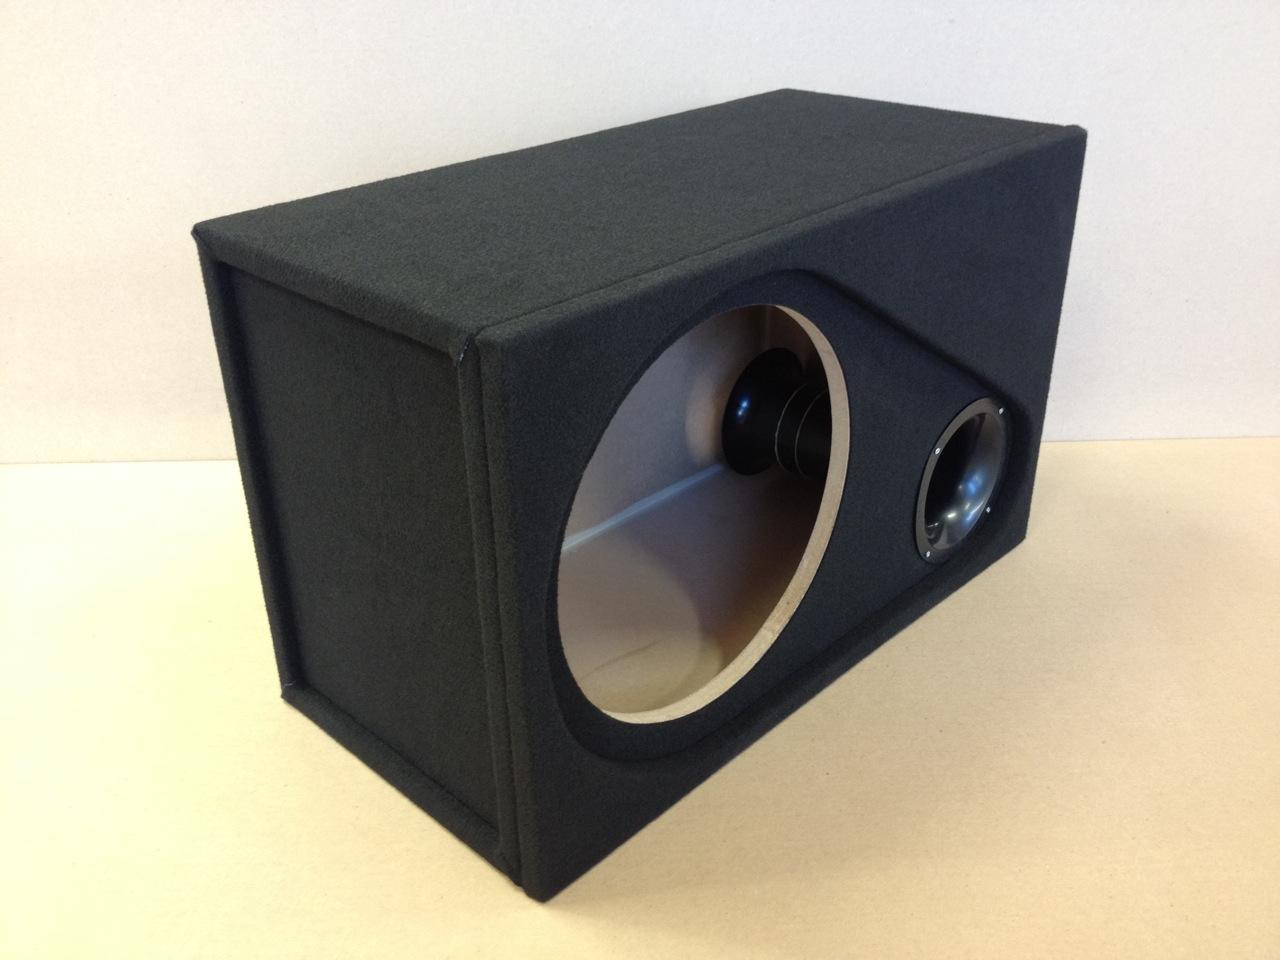 rockford fosgate enclosure with Auction Image Gallery on Auction Image Gallery further Item sku likewise Wiring Subwoofers Ohms besides Fostex Speaker Box as well Celestion Speaker Box Enclosure.